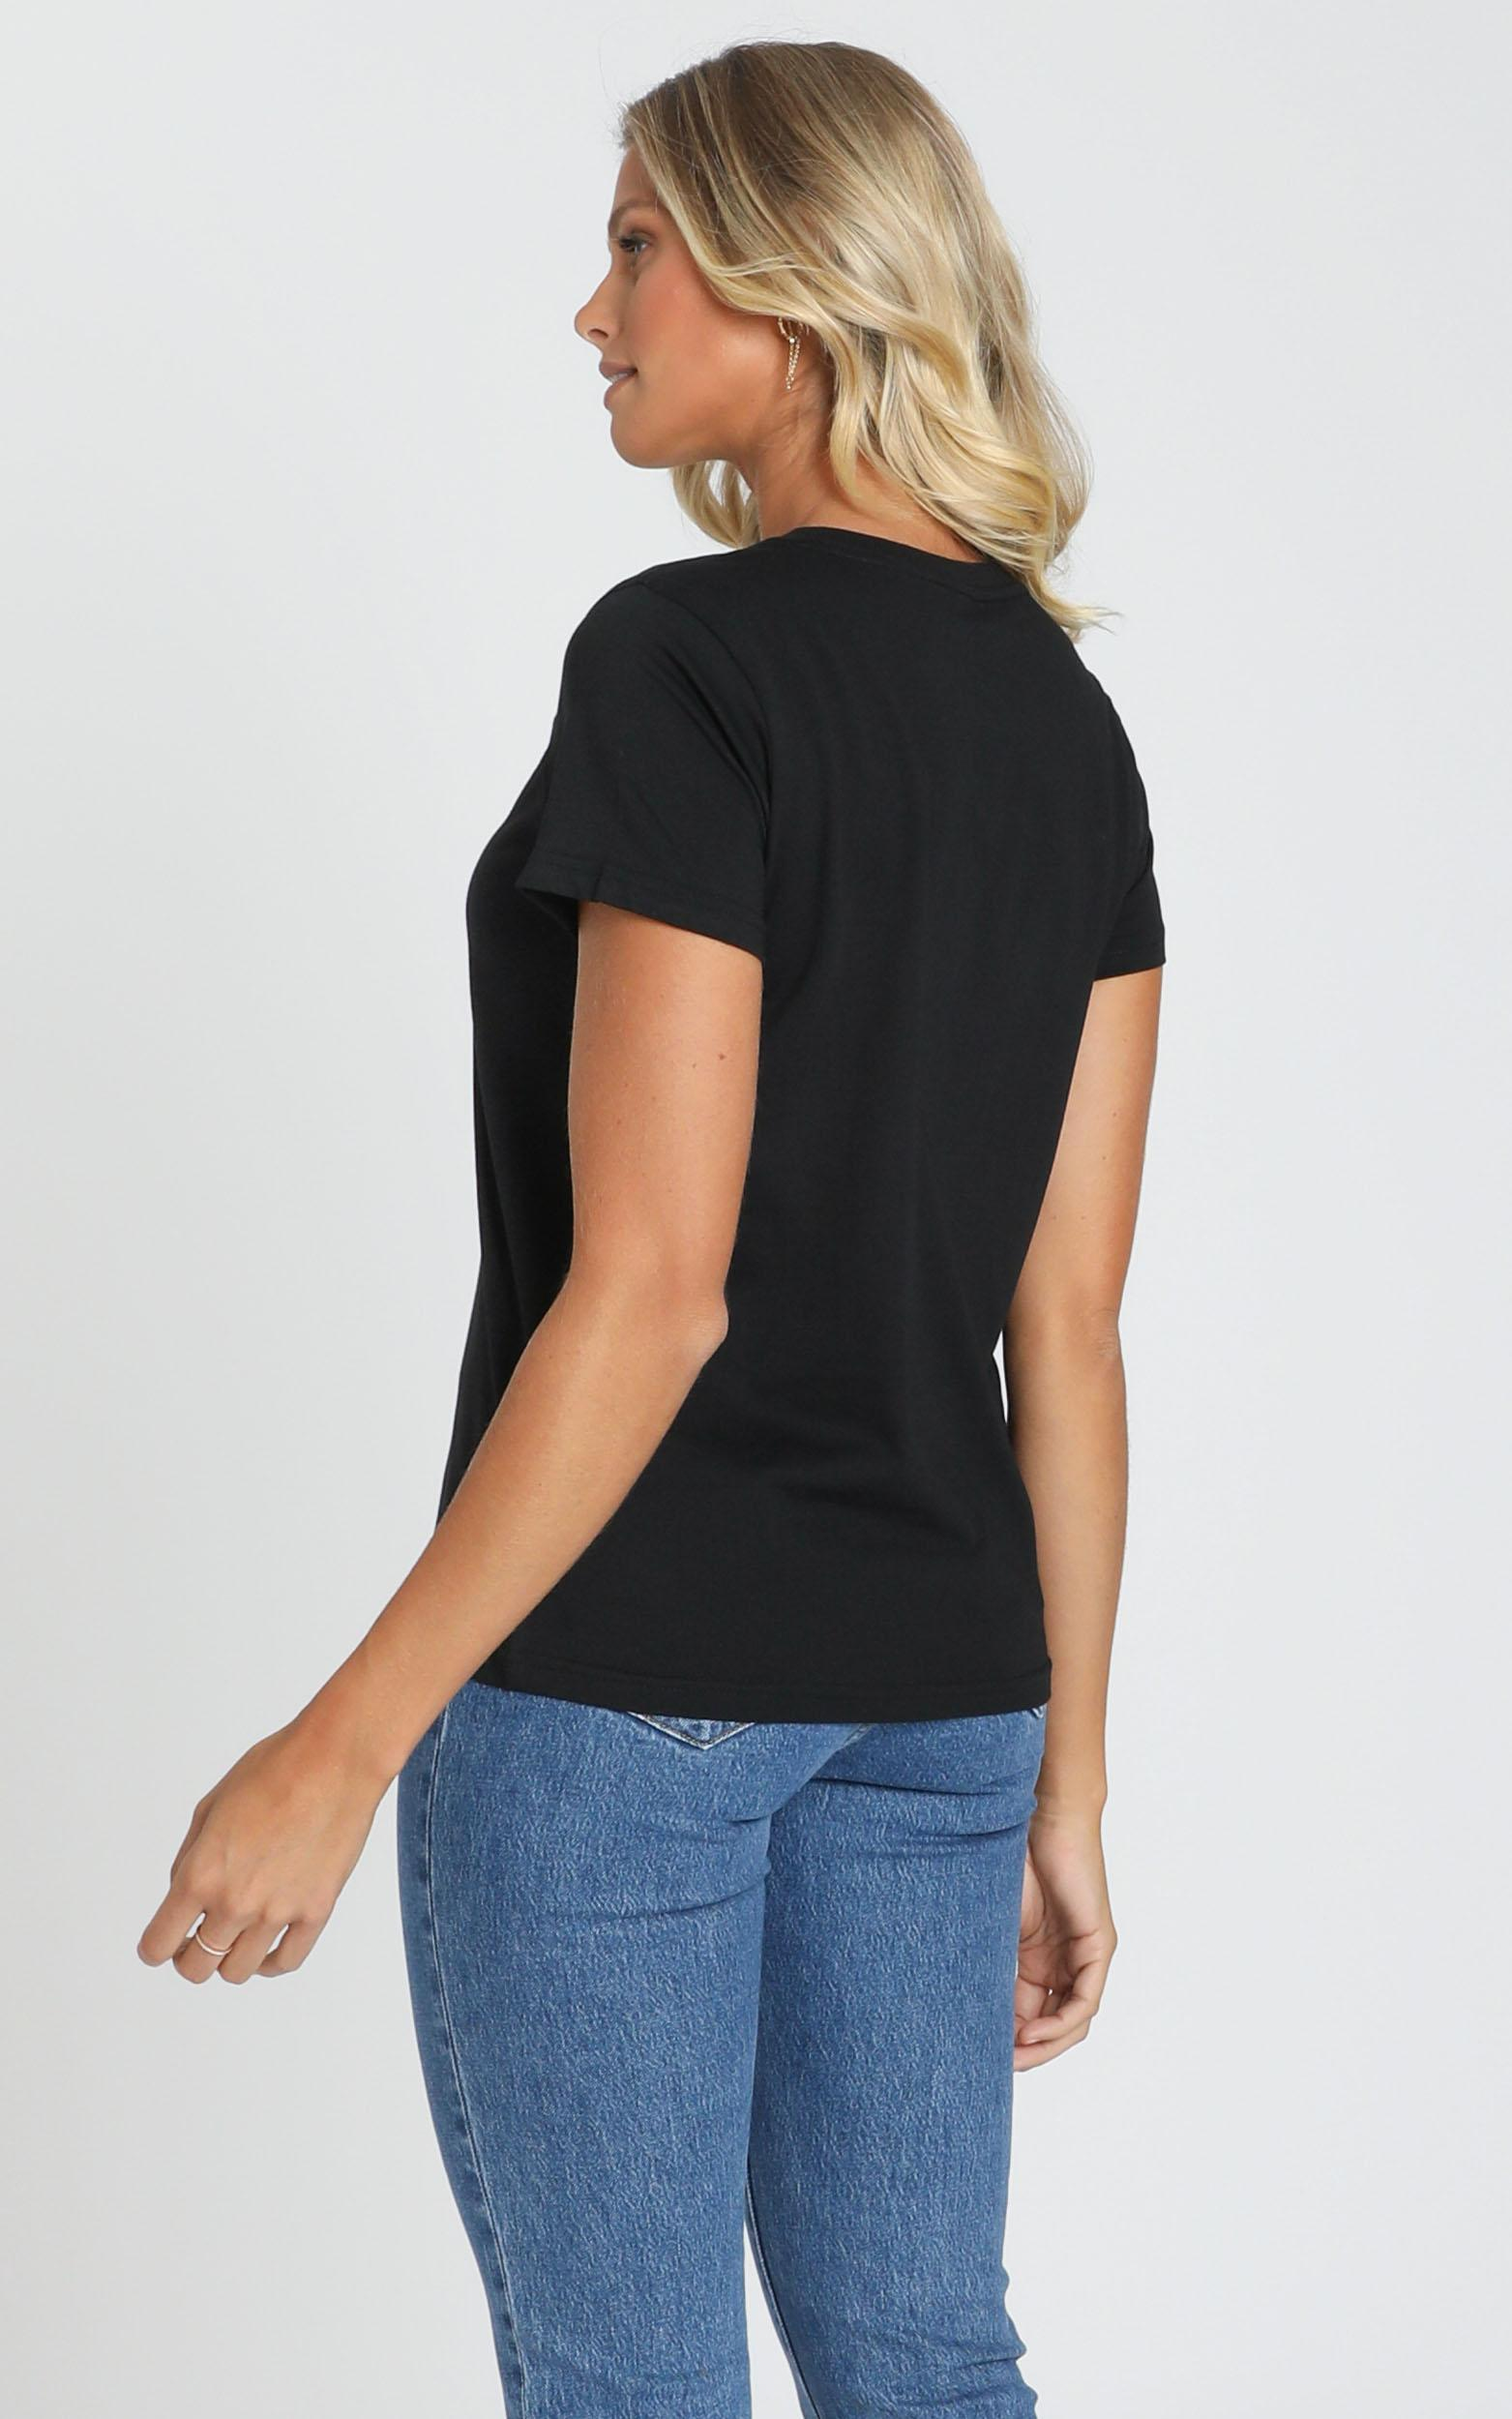 AS Colour - Maple Tee in Black - XS, Black, hi-res image number null